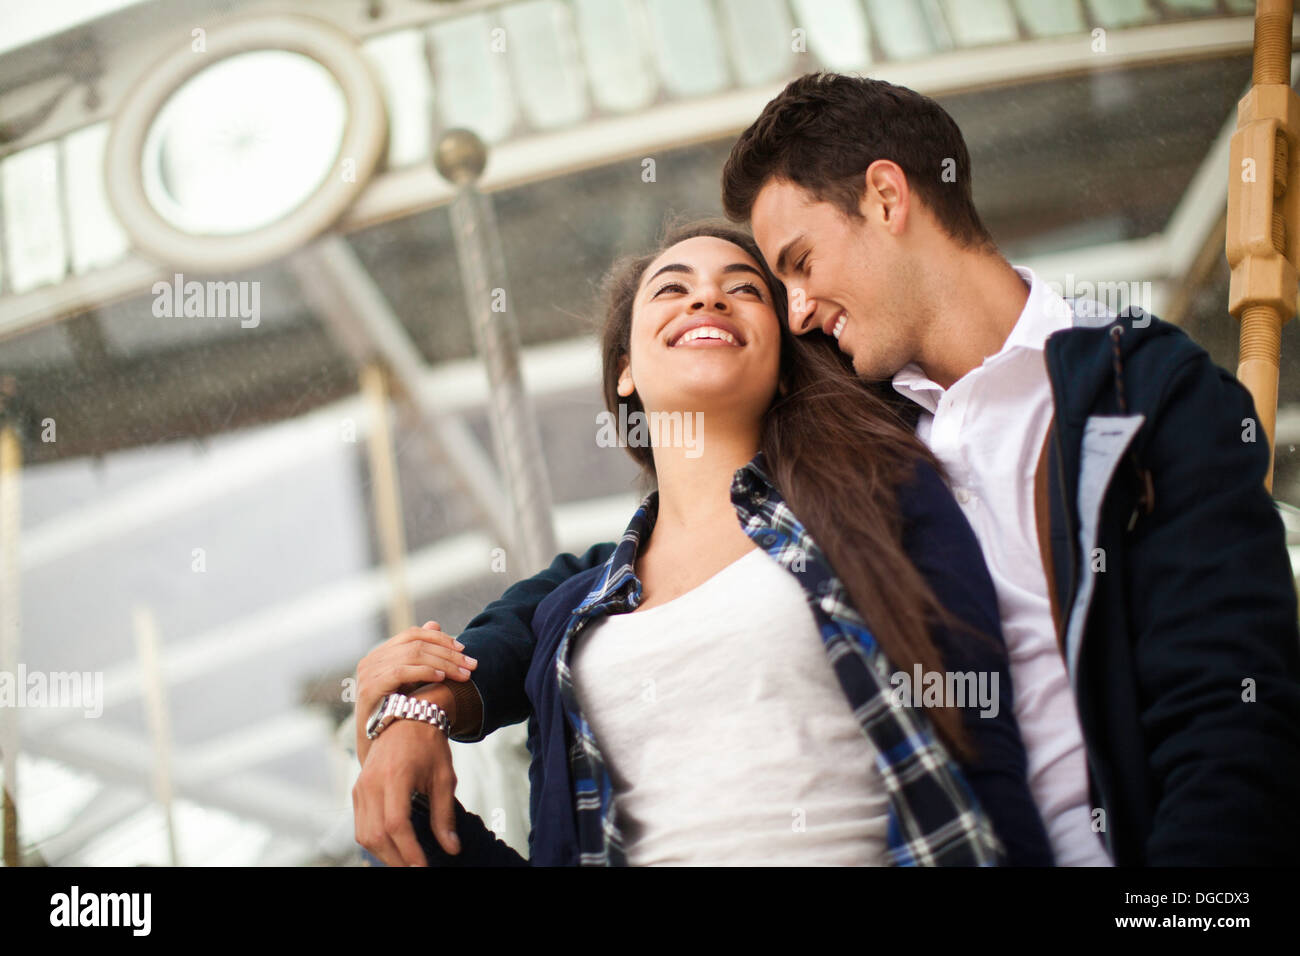 Young man with arm around woman, smiling - Stock Image